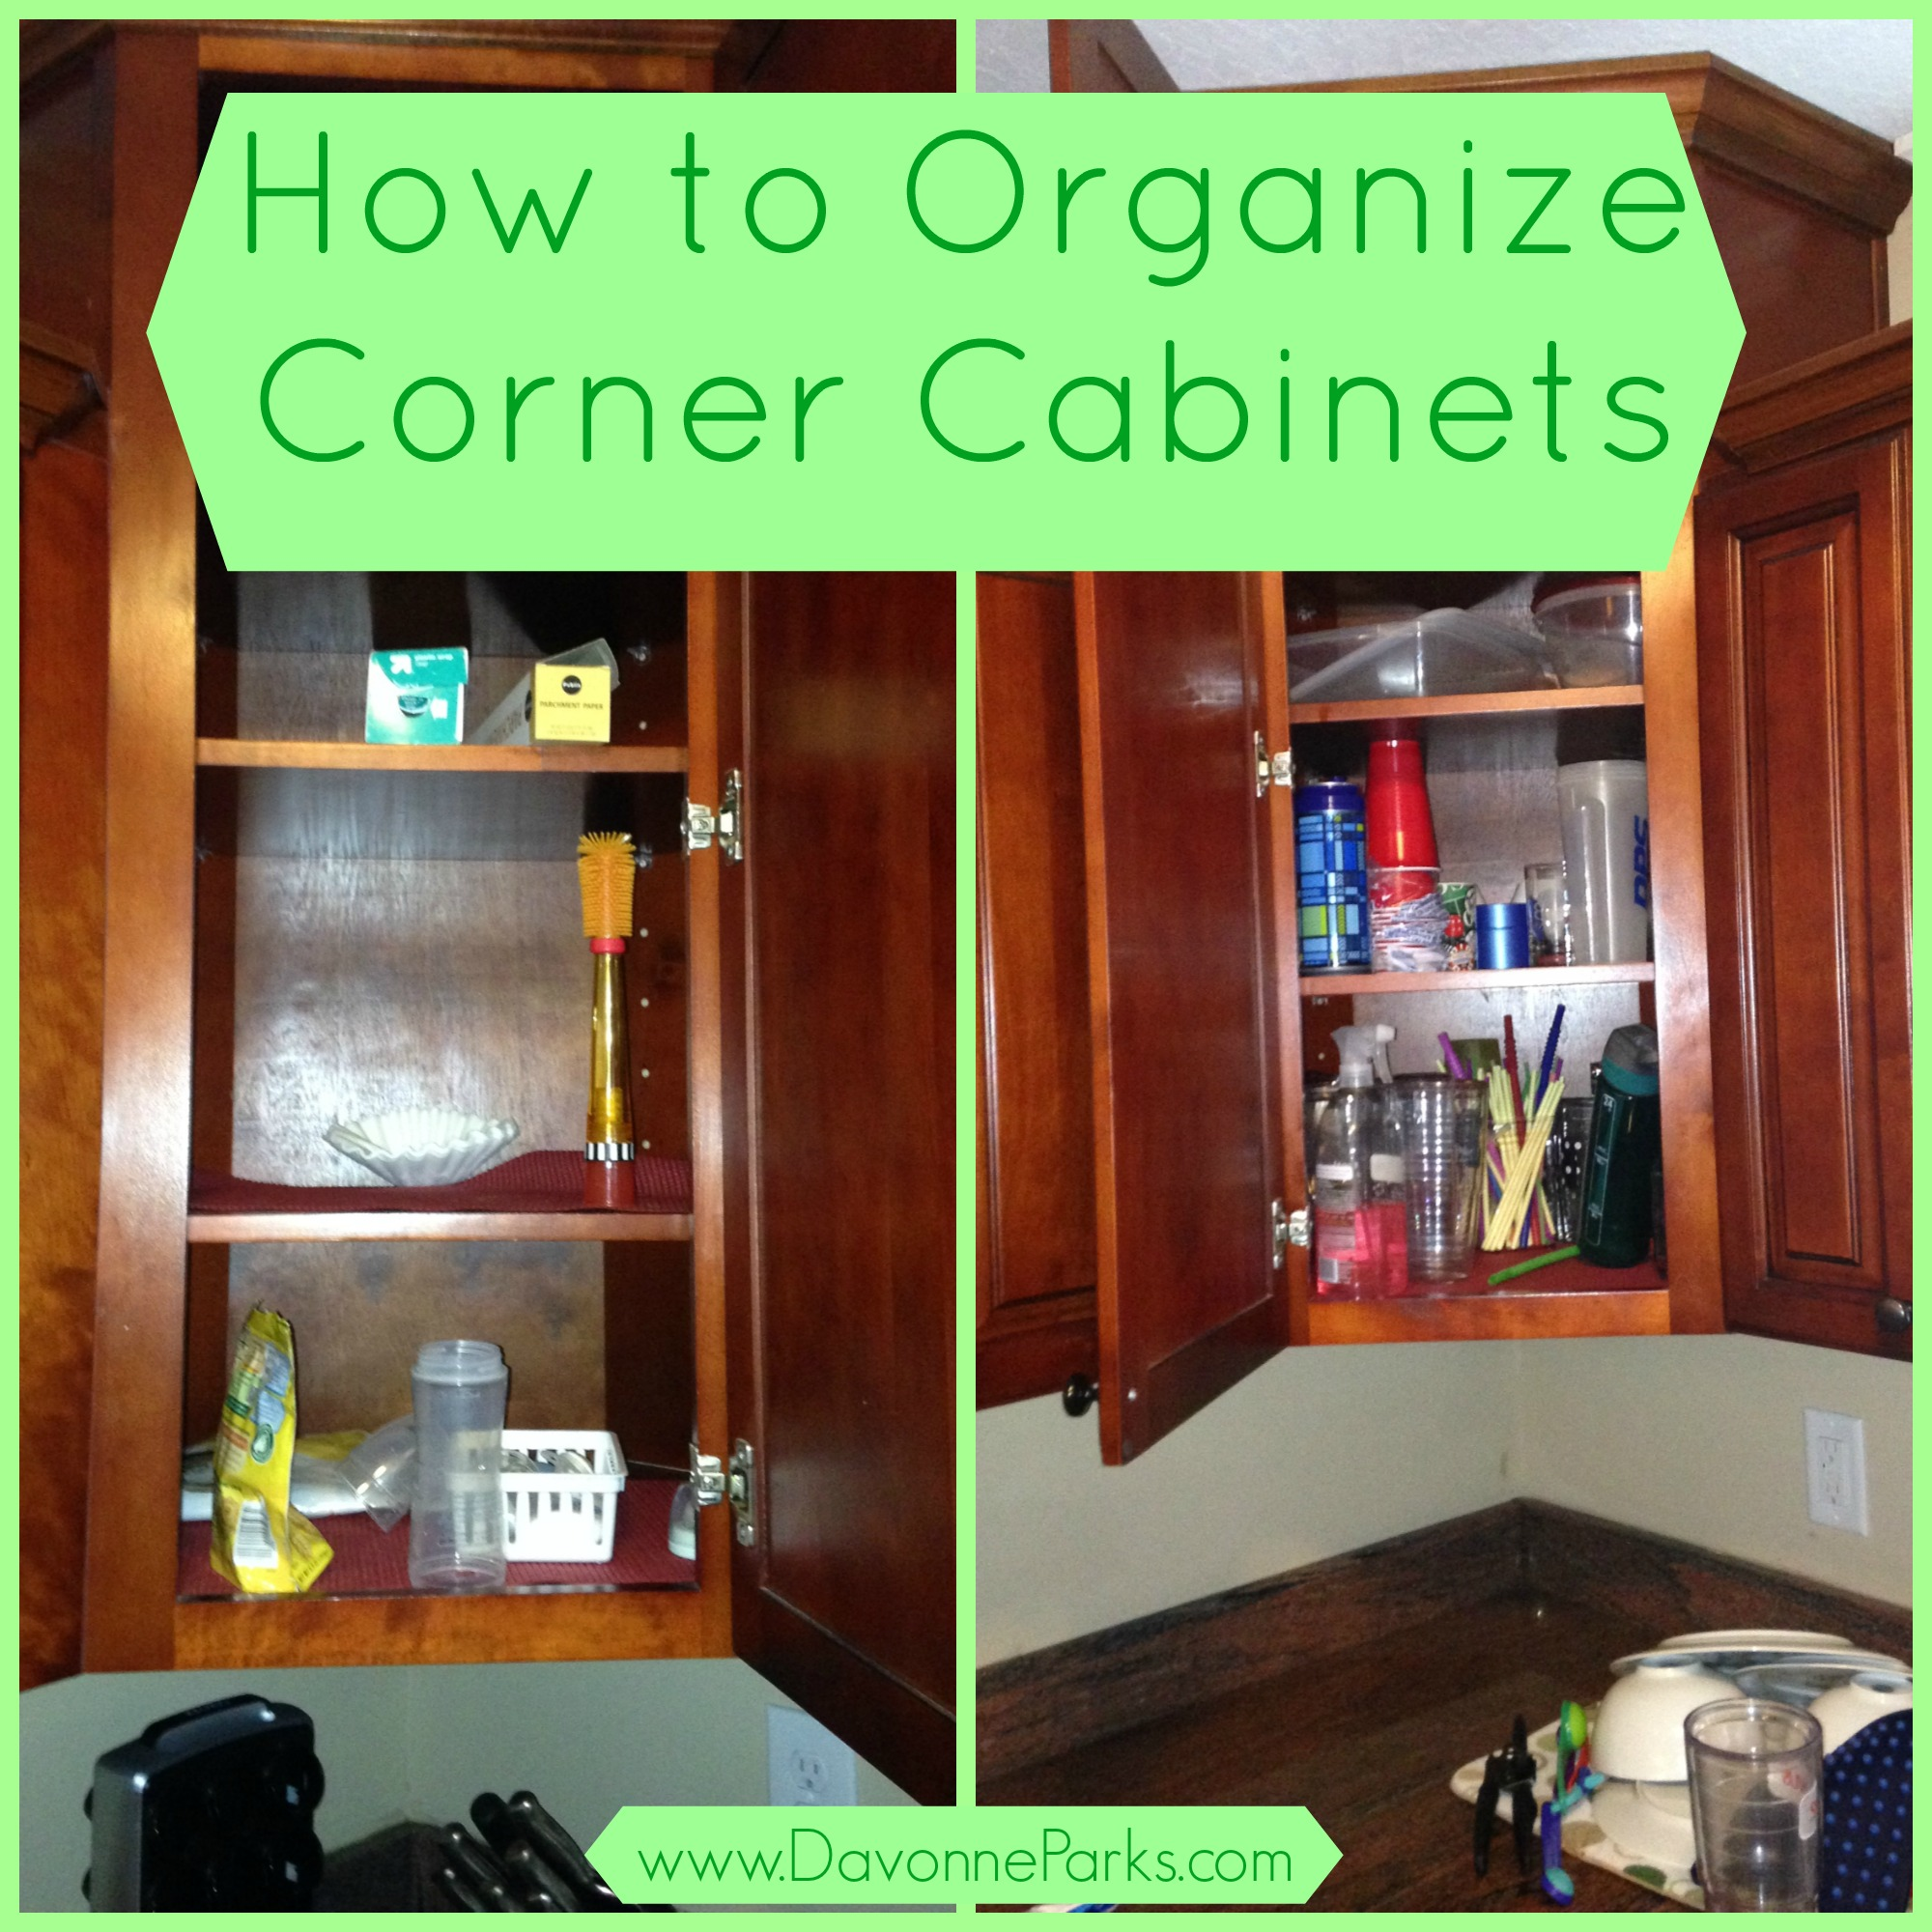 Kitchen Without Corner Cabinets How To Organize Corner Cabinets